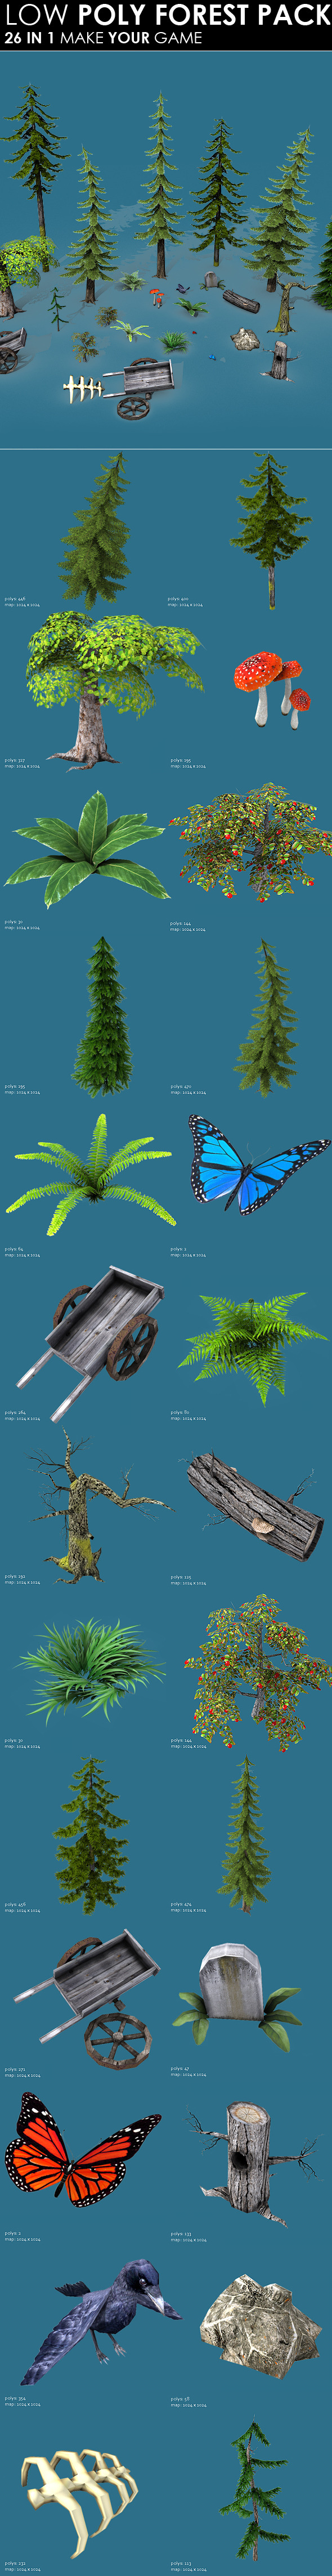 Low Poly Forest Pack (26 models) - 3DOcean Item for Sale